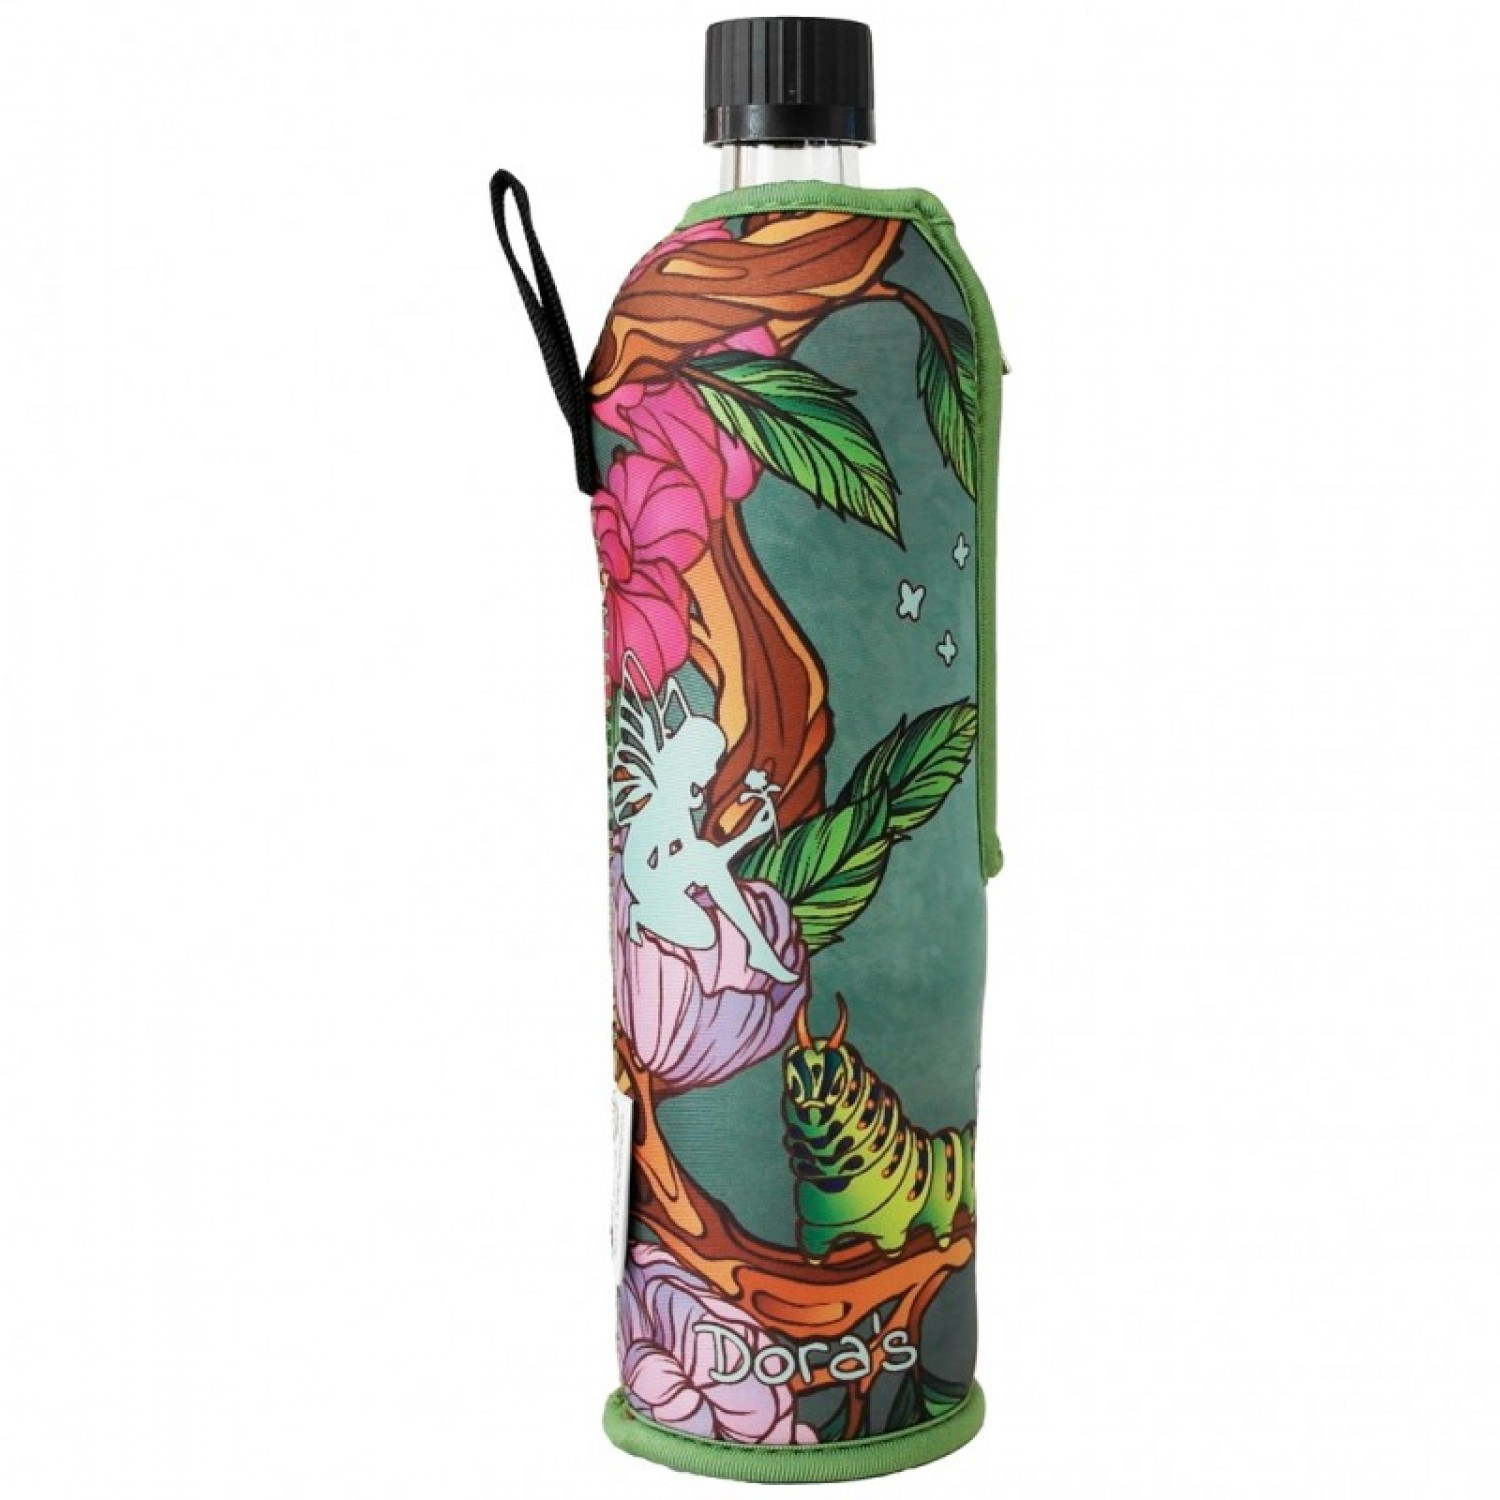 Special Edition Dora's Glass Bottle - Neoprene Sleeve Fairy